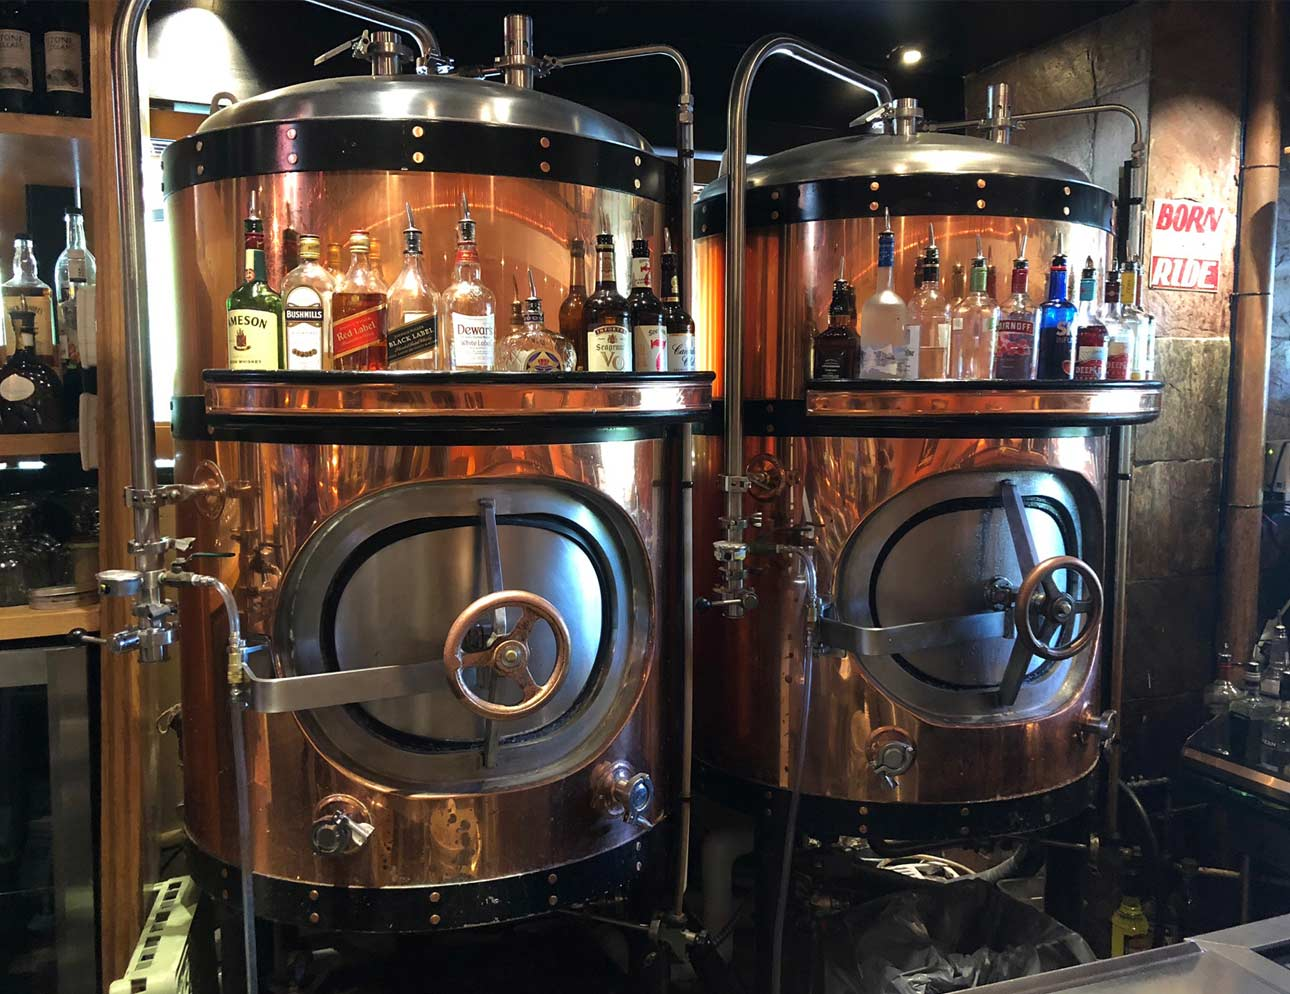 https://oakcreekbreweryandgrill.com/wp-content/uploads/2018/07/Copper-Urns-1290x994.jpg